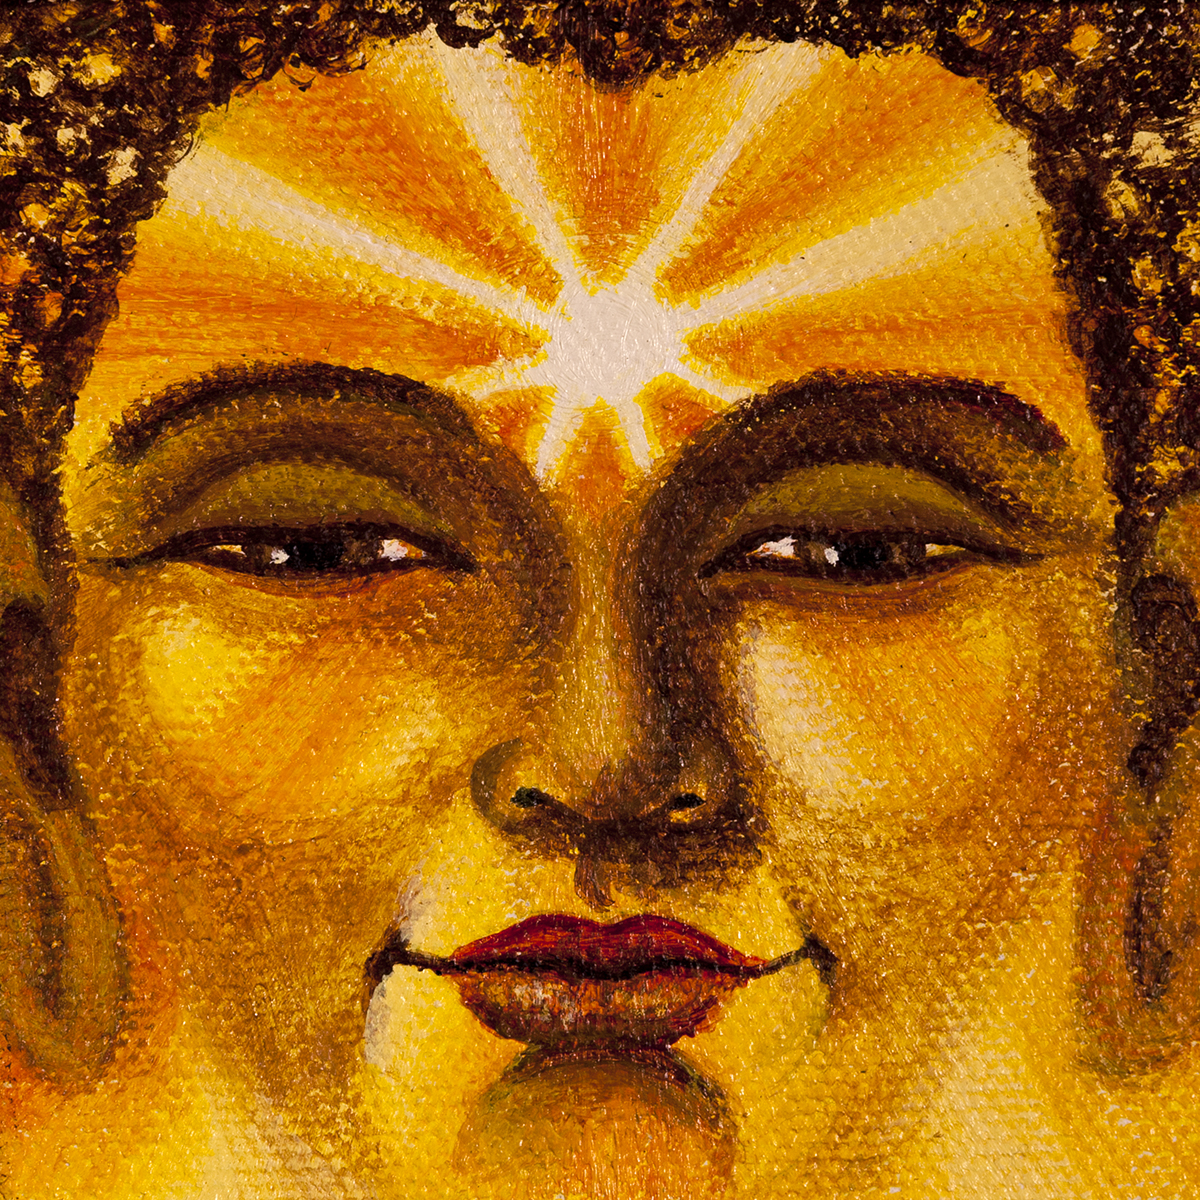 Awake One-Buddha Face 3X3.jpg